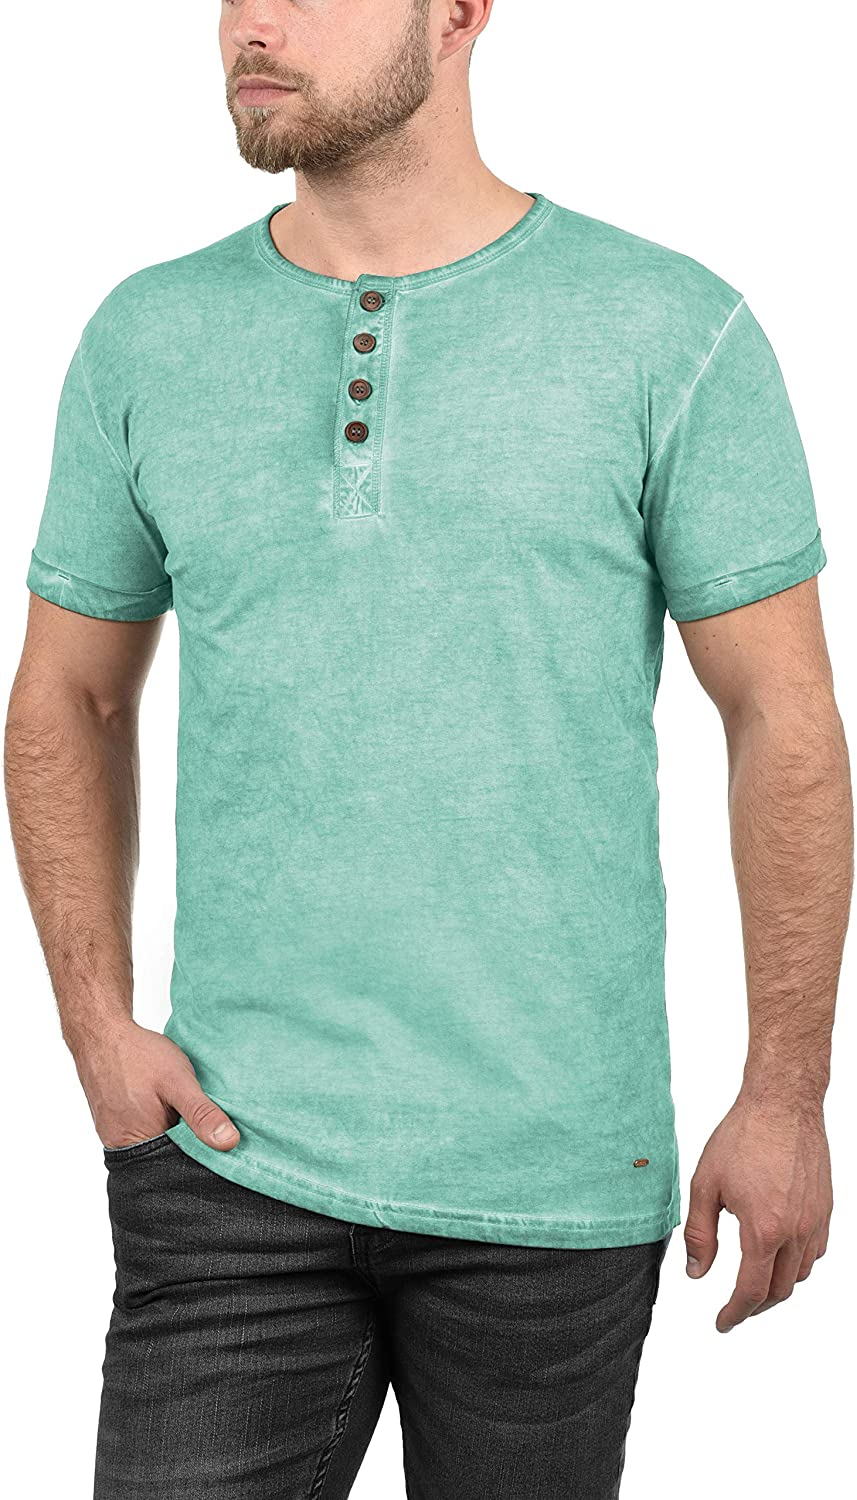 Solid Tihn Mens T-Shirt Short Sleeve Shirt Tee with Grandad Collar Made of 100/% Cotton